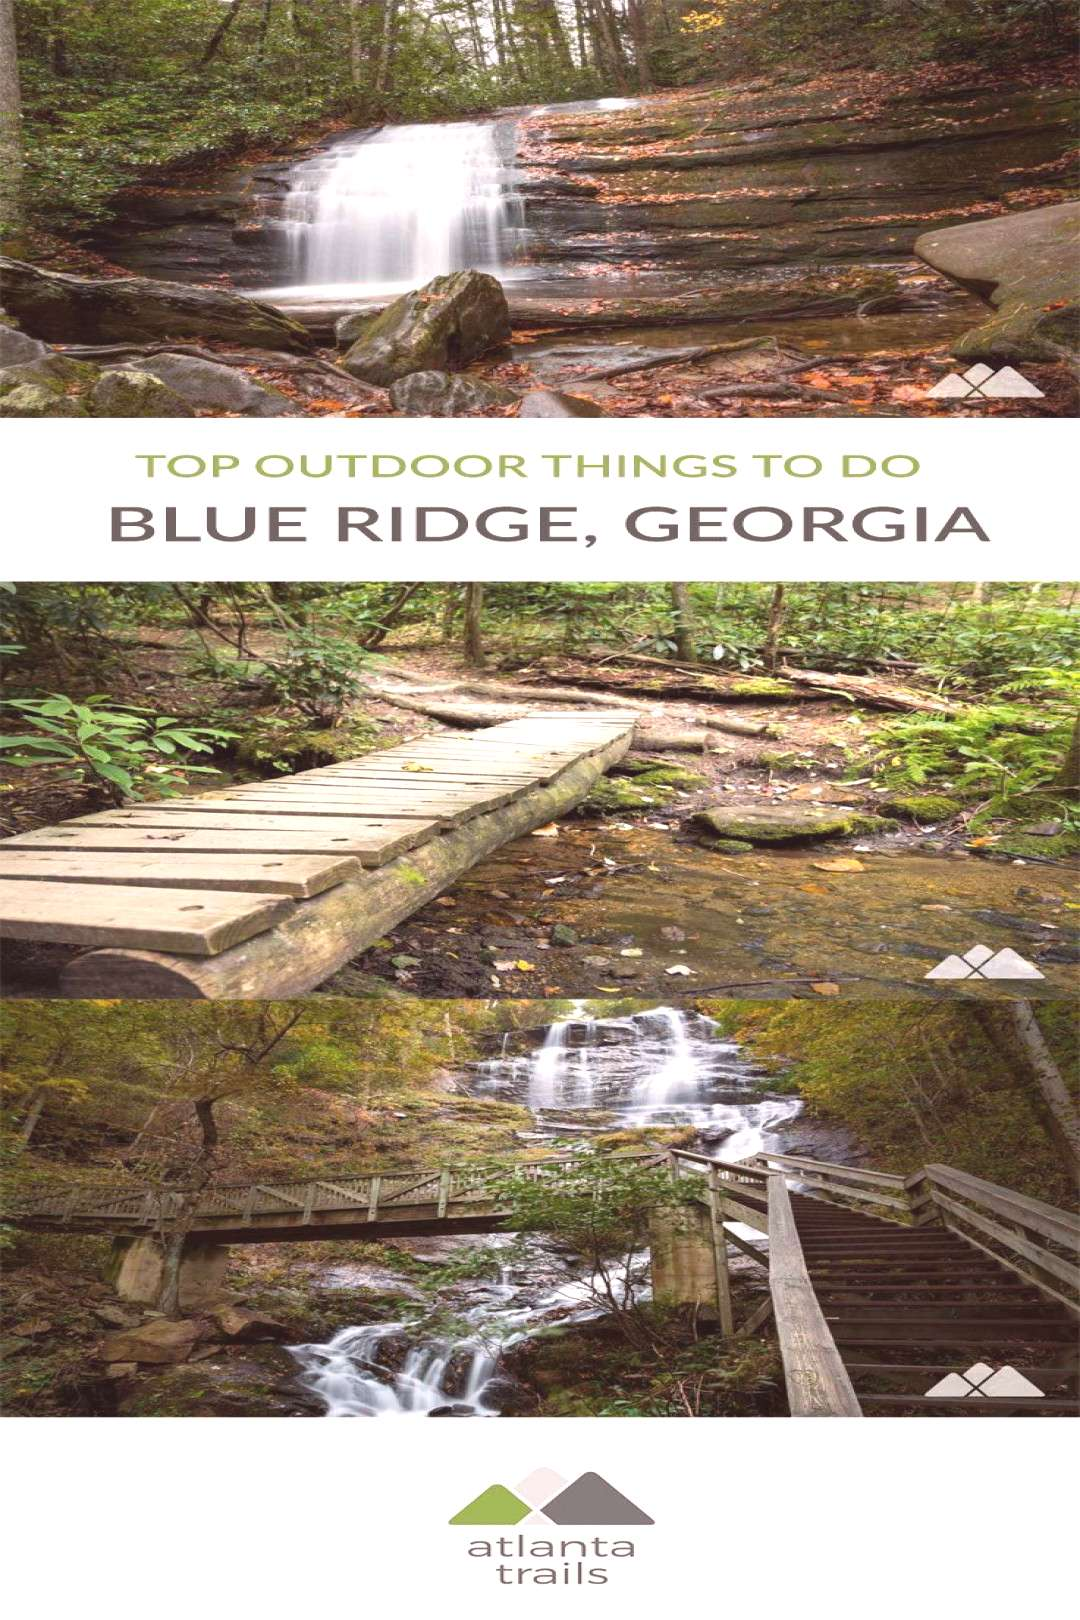 Top outdoor things to do in Blue Ridge, GA hiking, cabins, restaurants - Find an adventure in Blu